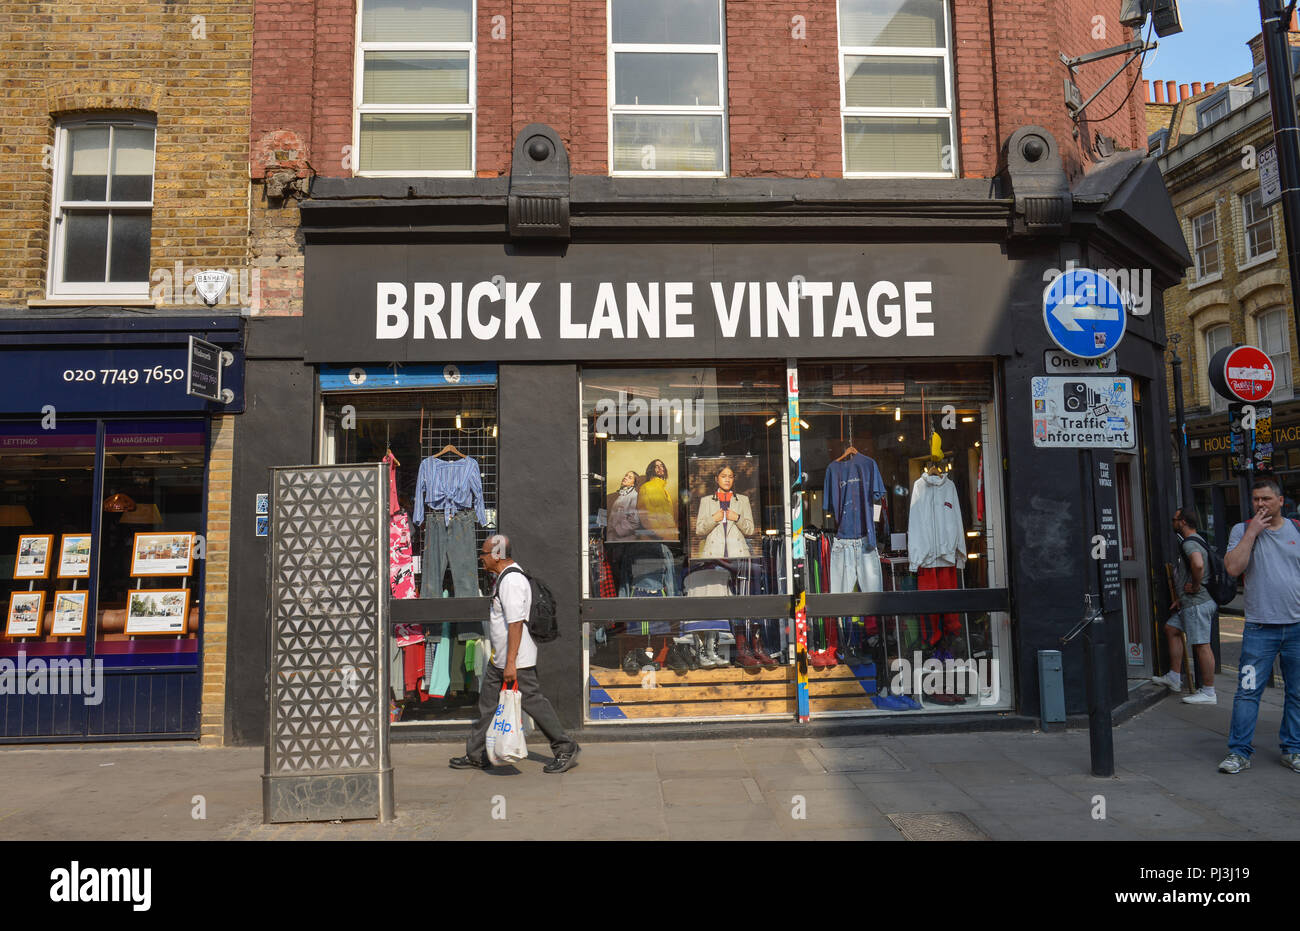 Laeden, Brick Lane, Tower Hamlets, London, England, Grossbritannien Stock Photo